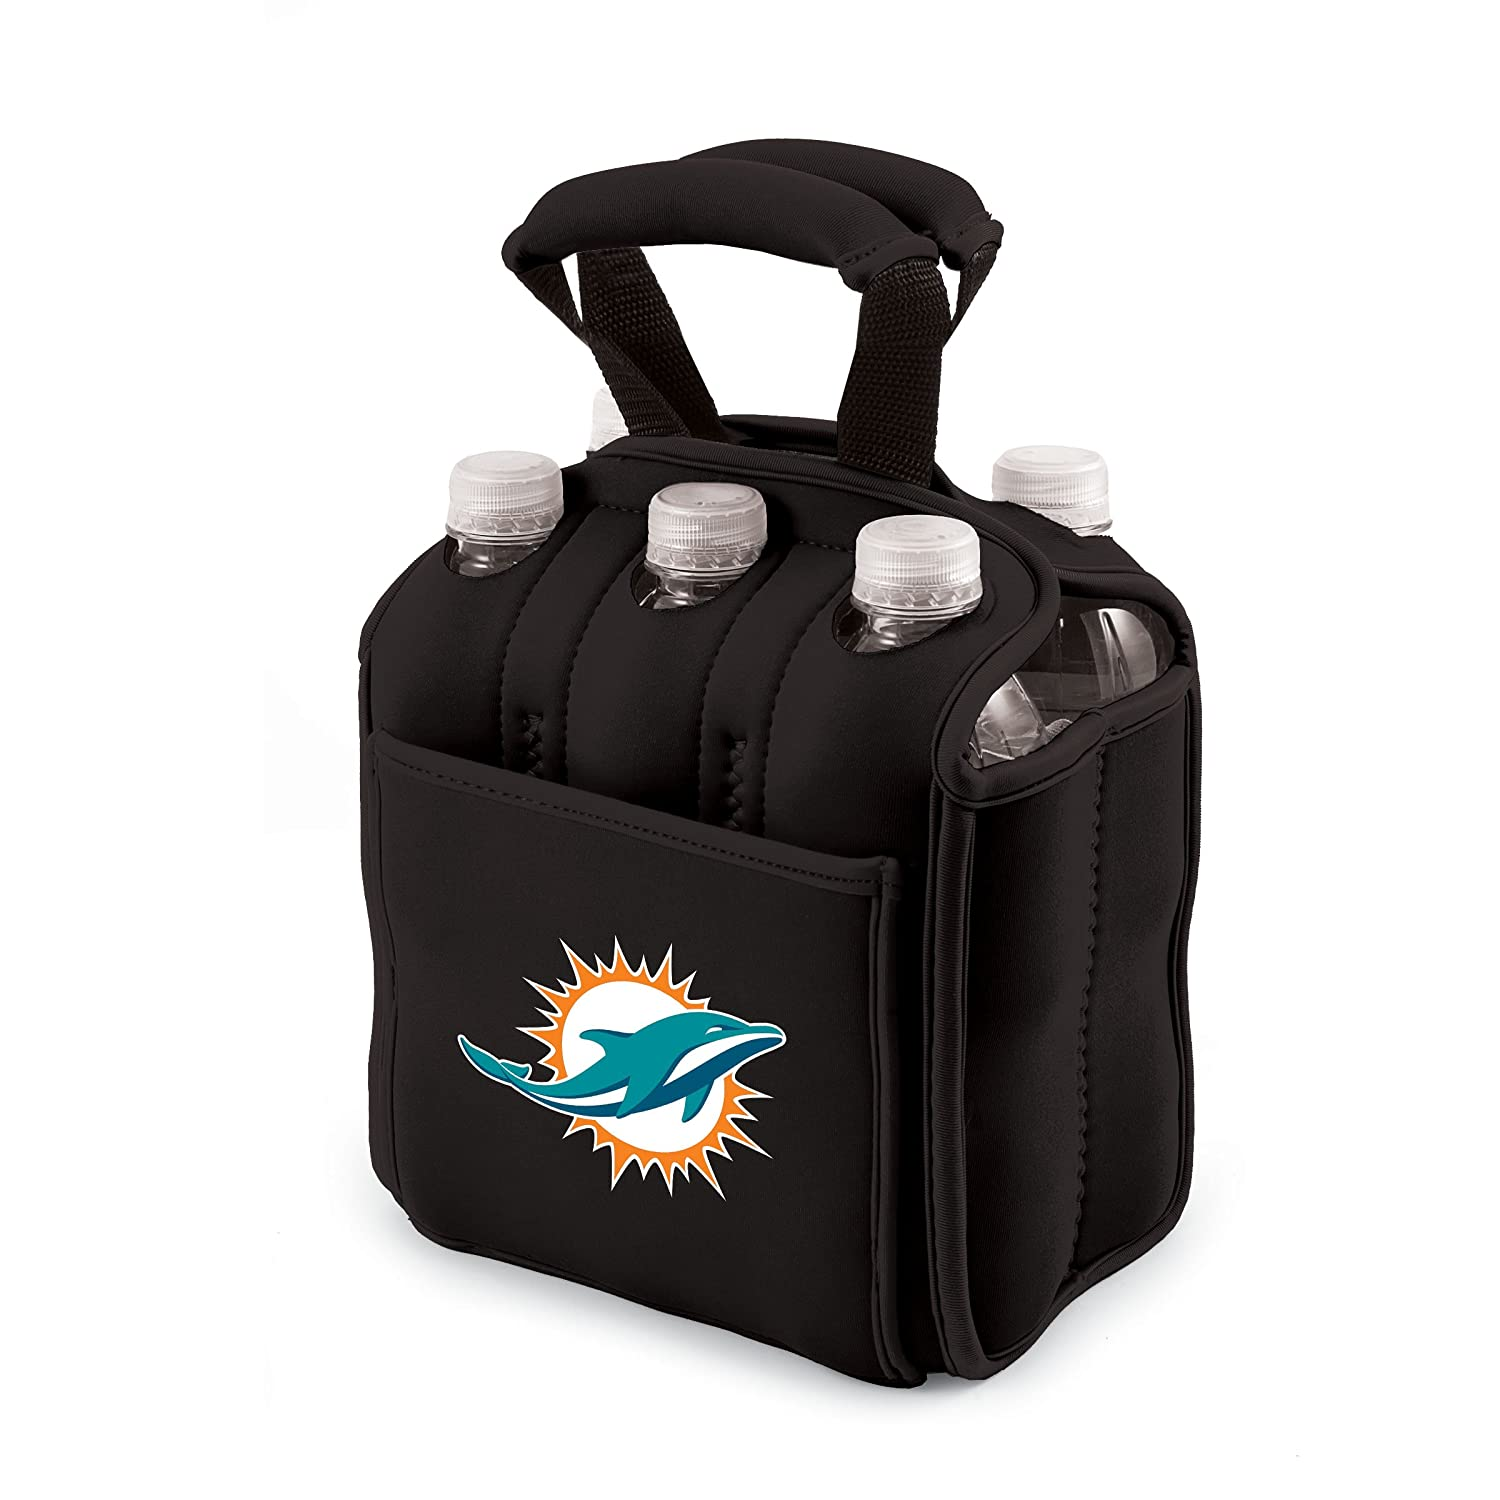 NFL Miami Dolphins Six Pack Cooler Tote